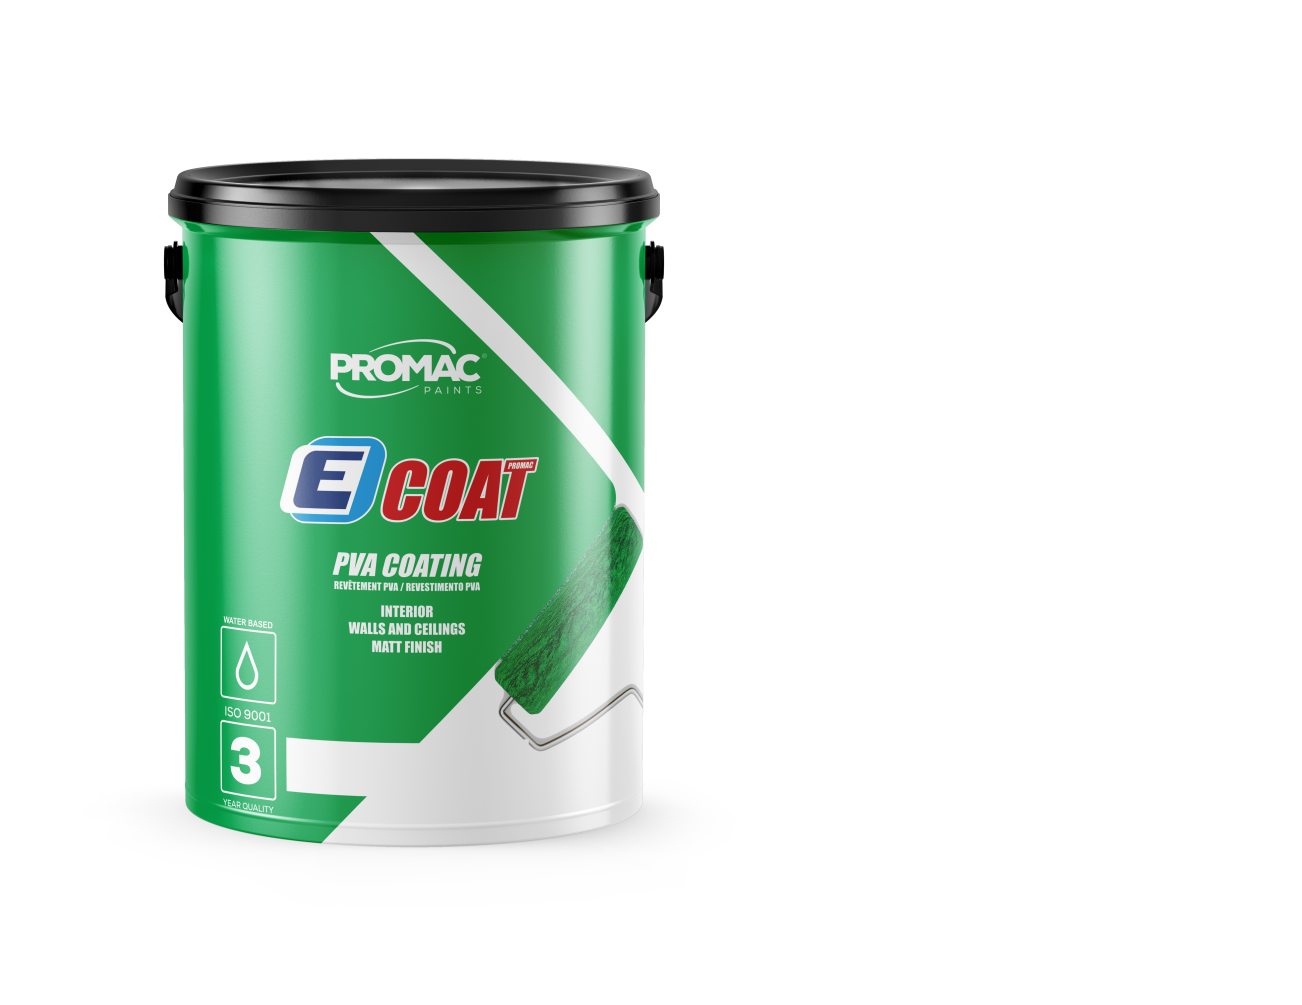 PVA COATING - WATER BASED Promac Ecoat PVA is a decorative acrylic paint for interior use. May be used as a filler coating under medium quality acrylic paints on interior walls and ceilings over suitably prepared surfaces.